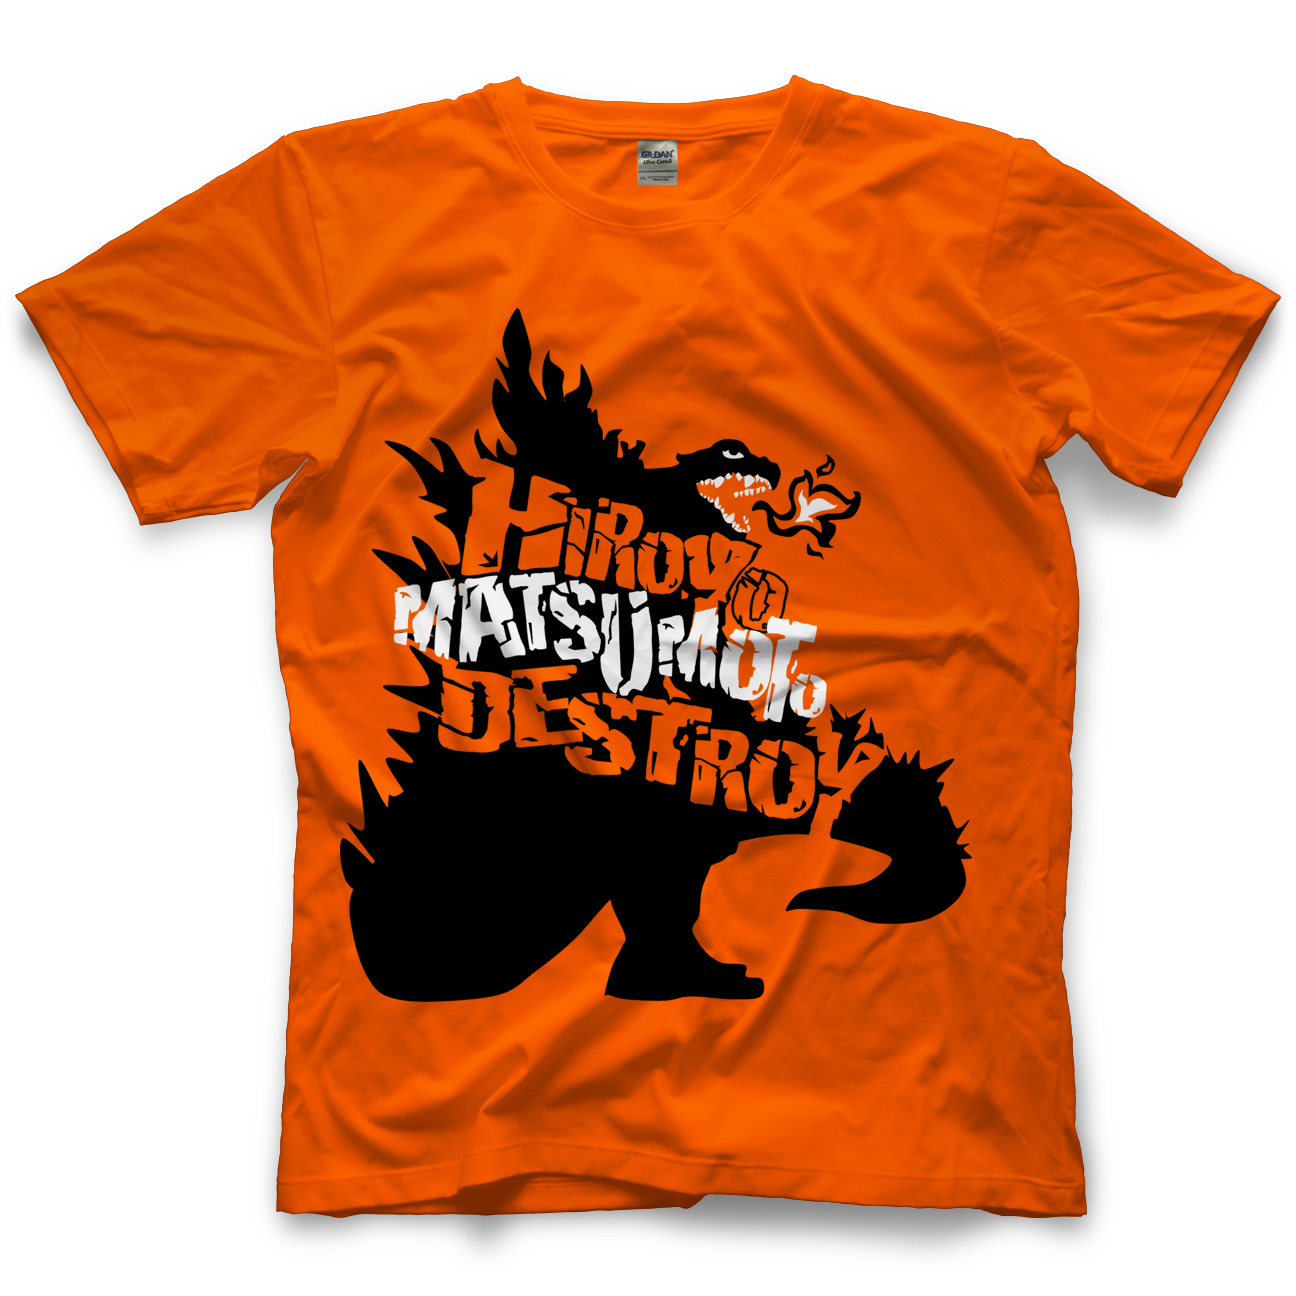 Hiroyo Matsumoto Destroy Monster T-shirt